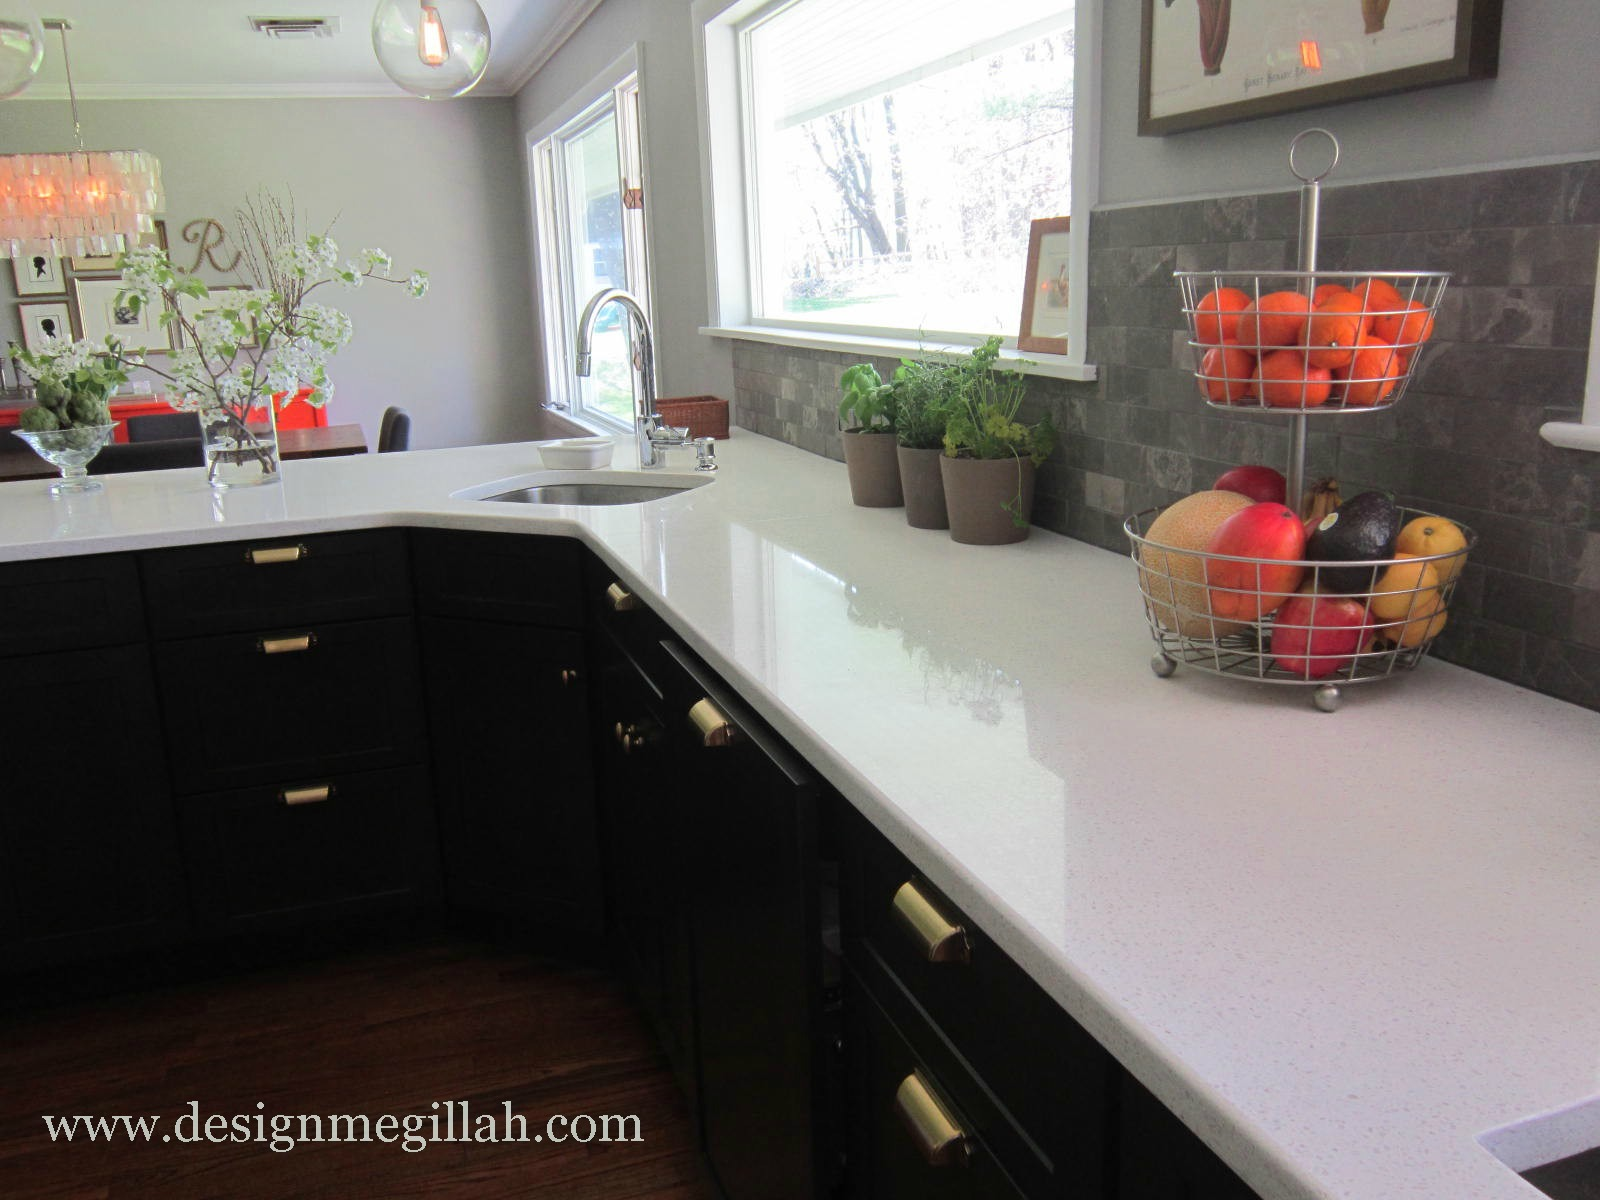 Jamestown Designer Kitchens Design Megillah Ta Dathe Kitchen